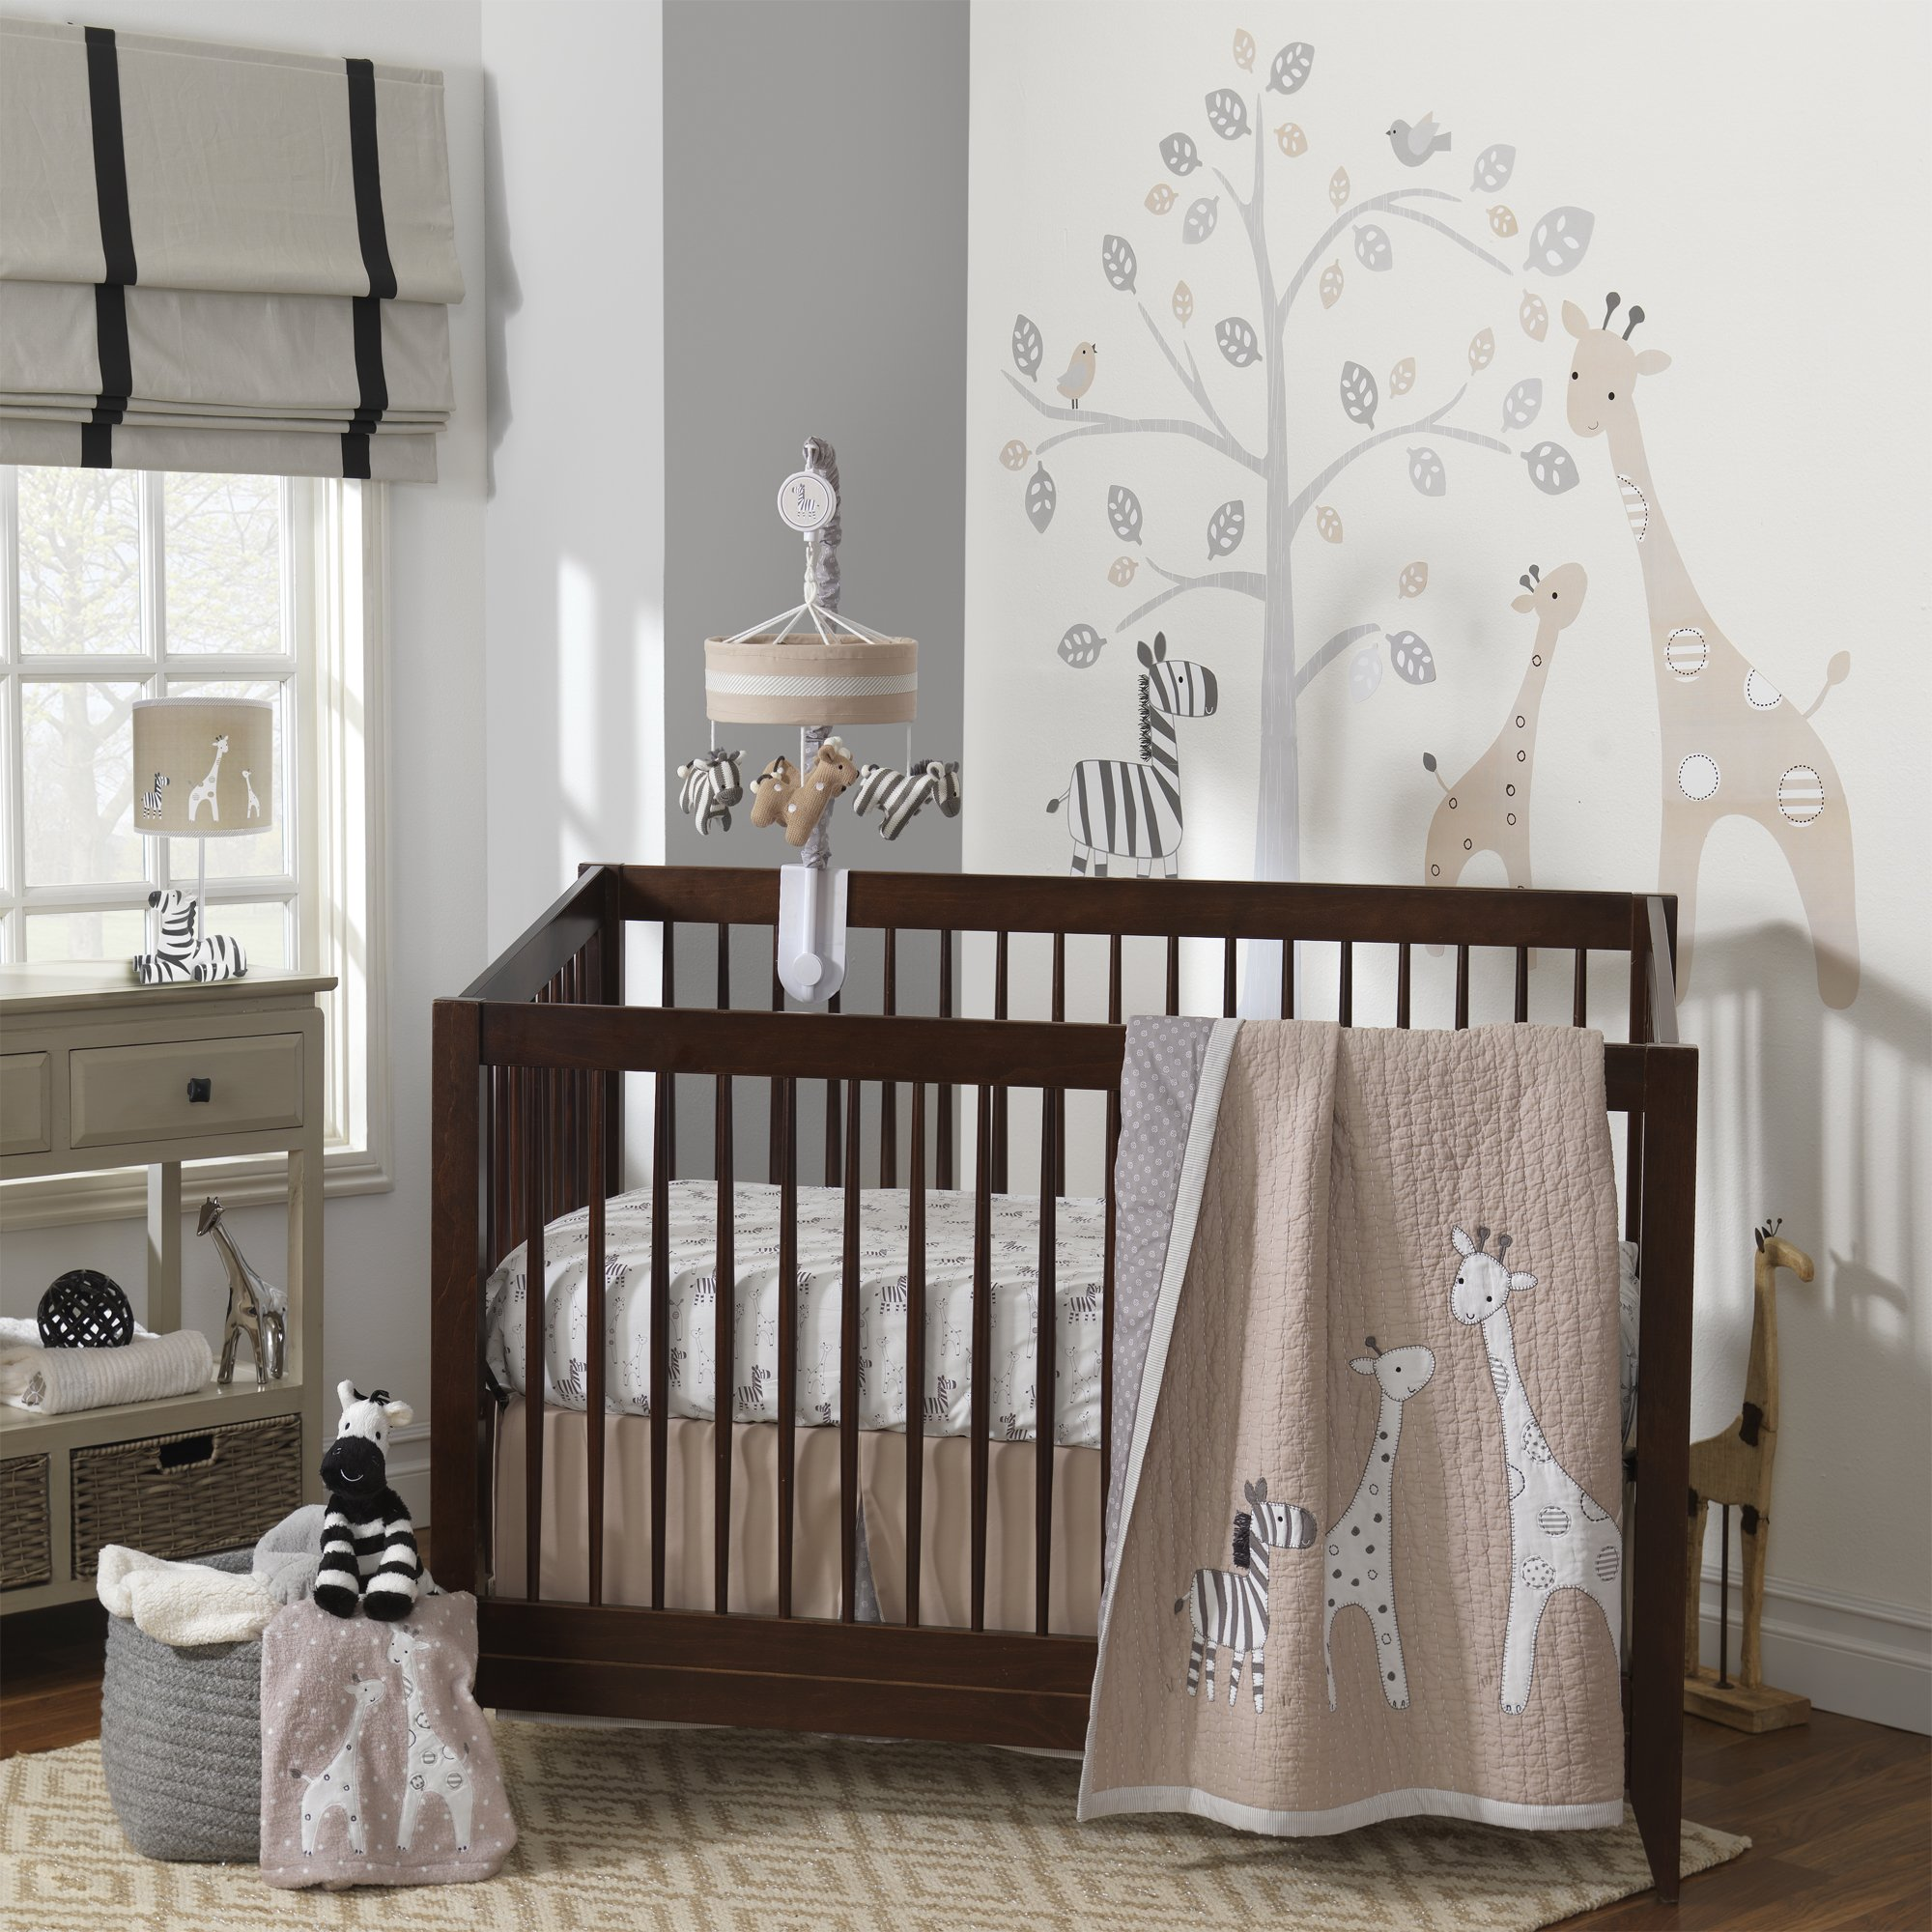 having baby and sheets full bedding of an size cribs nautical navy unding girl grey reasons light blue elephant yellow pho boy gingham a why garanimals solid ture crib cream white tro colored set chevron nursery sets excellent fearso bumper